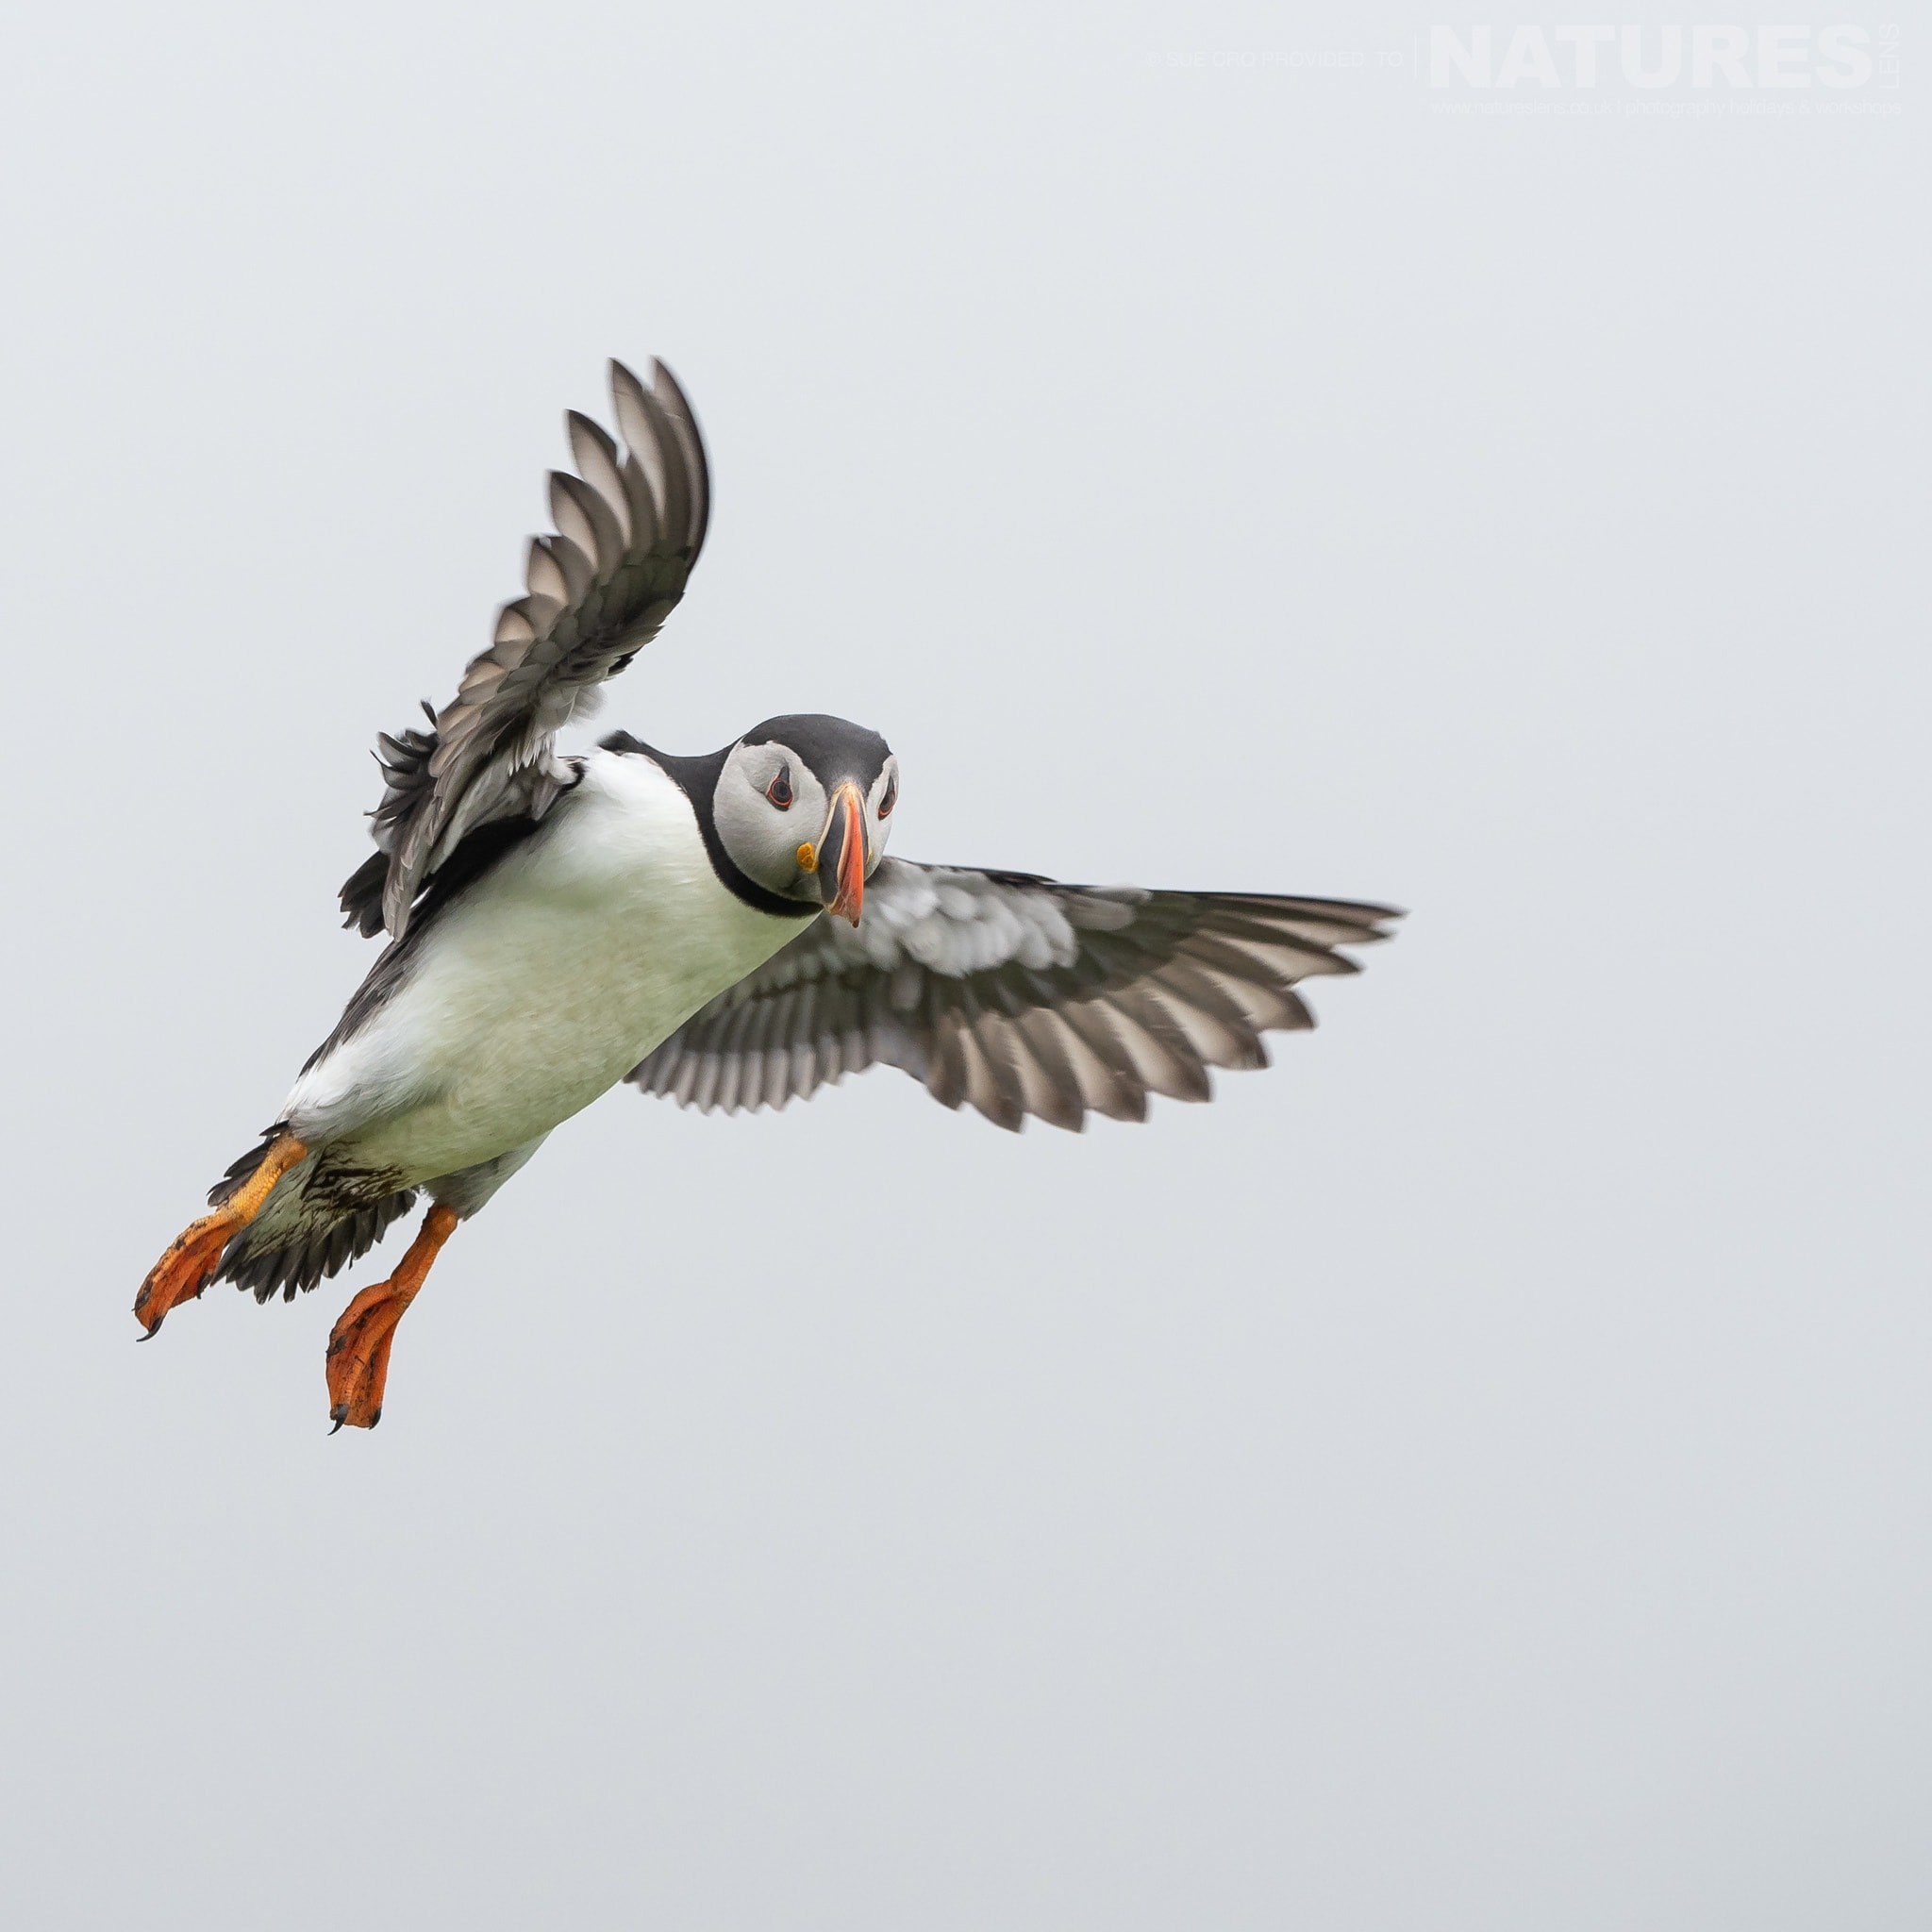 This Puffin In Flight Makes For A Classic Skomer Image   Photographed During The NaturesLens Atlantic Puffins Of Skomer Photography Holiday